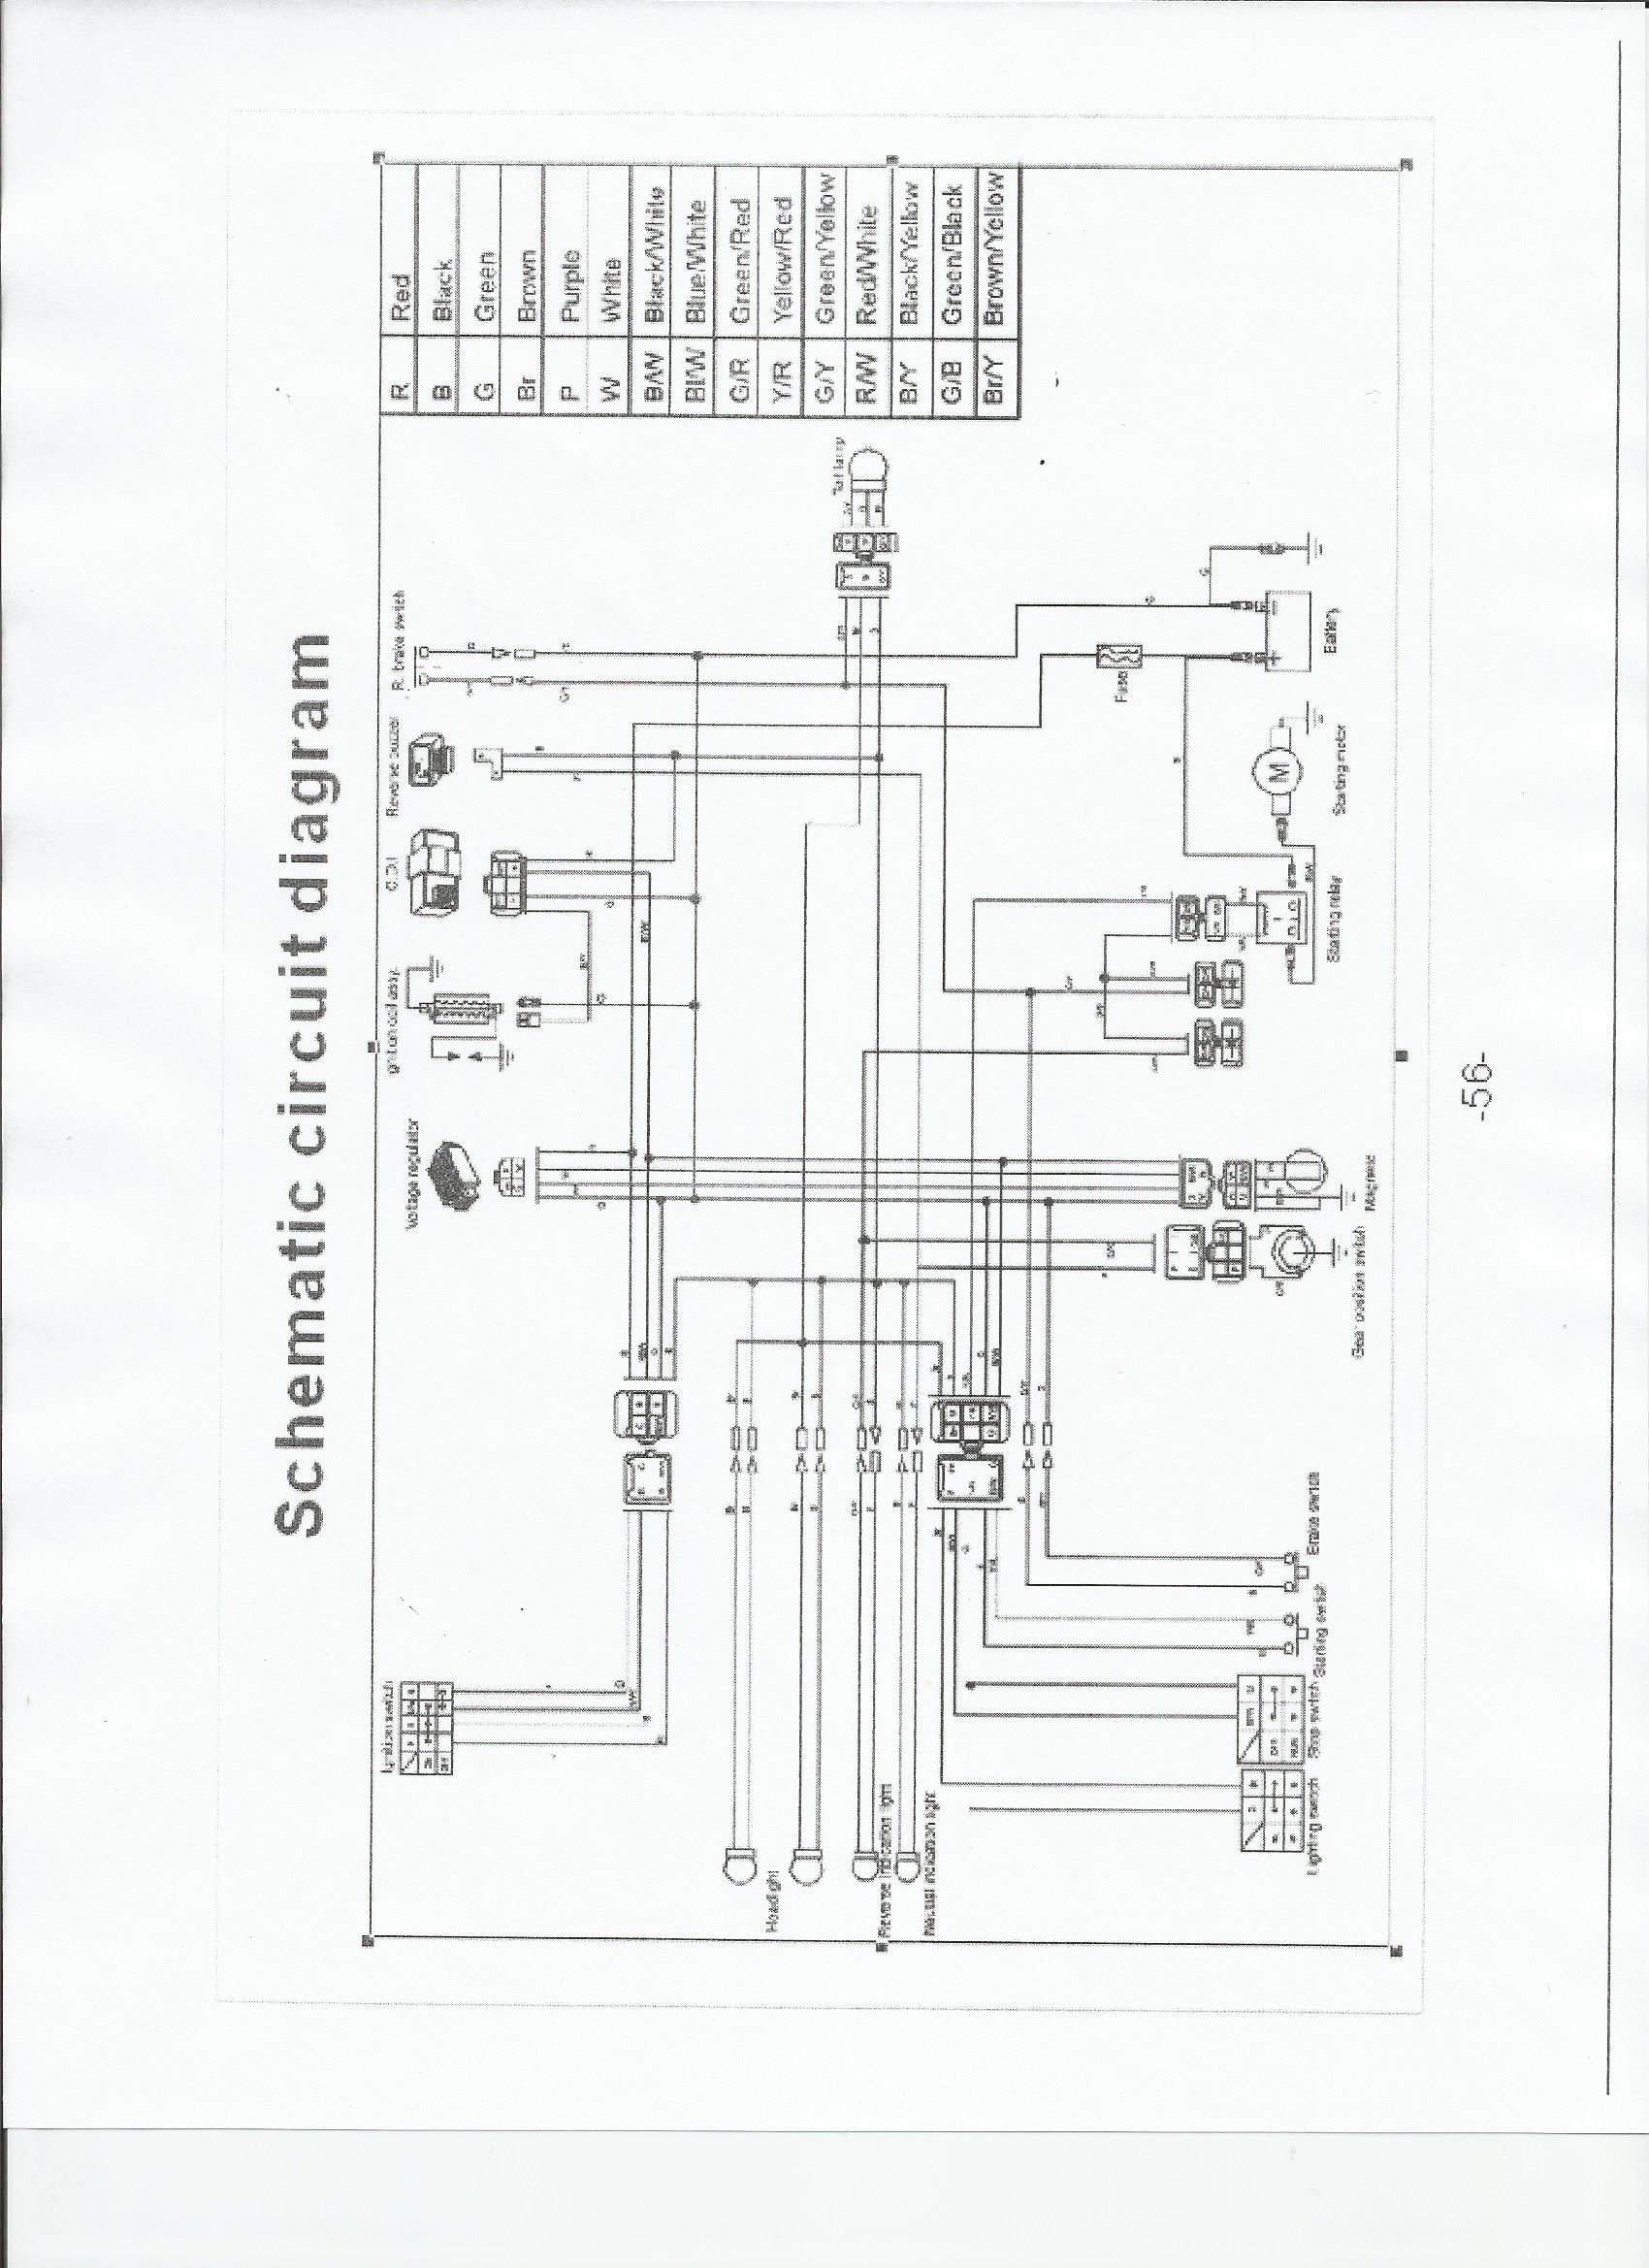 tao tao wiring schematic s support familygokarts com hc en us article red bull mini fridge wiring diagram at fashall.co